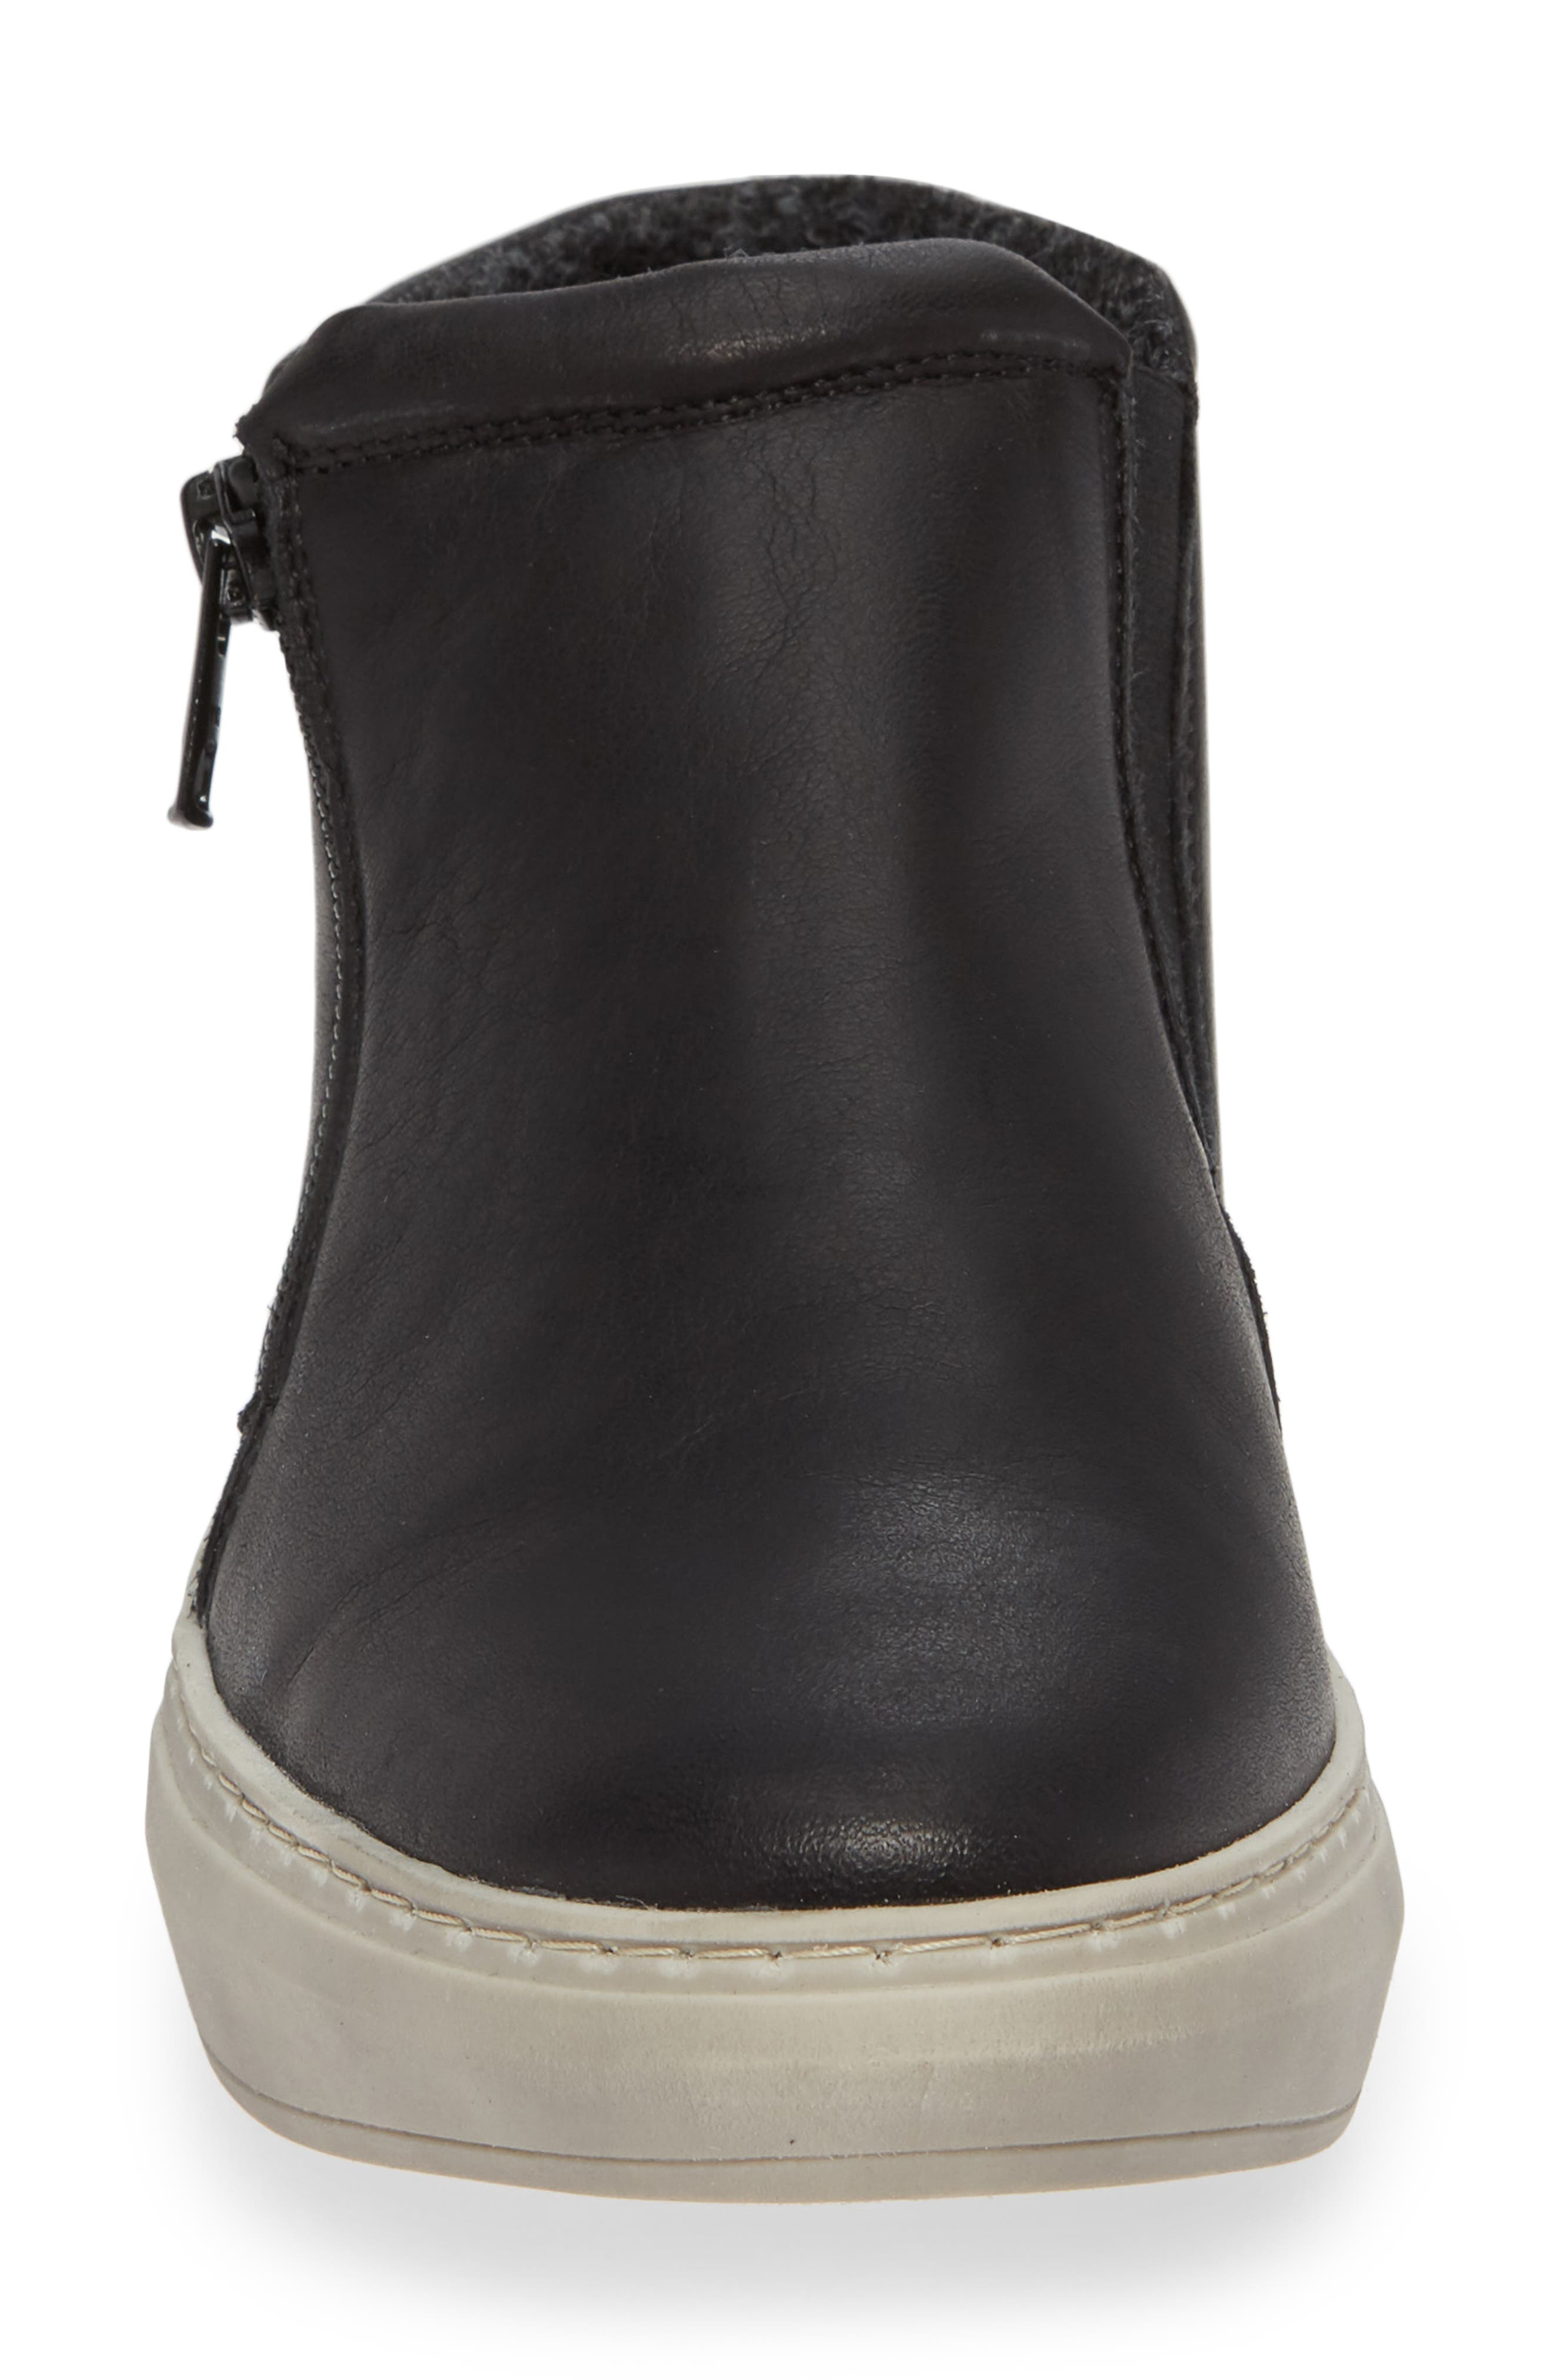 CLOUD,                             Qupid Wool Lined Sneaker,                             Alternate thumbnail 4, color,                             BLACK LEATHER